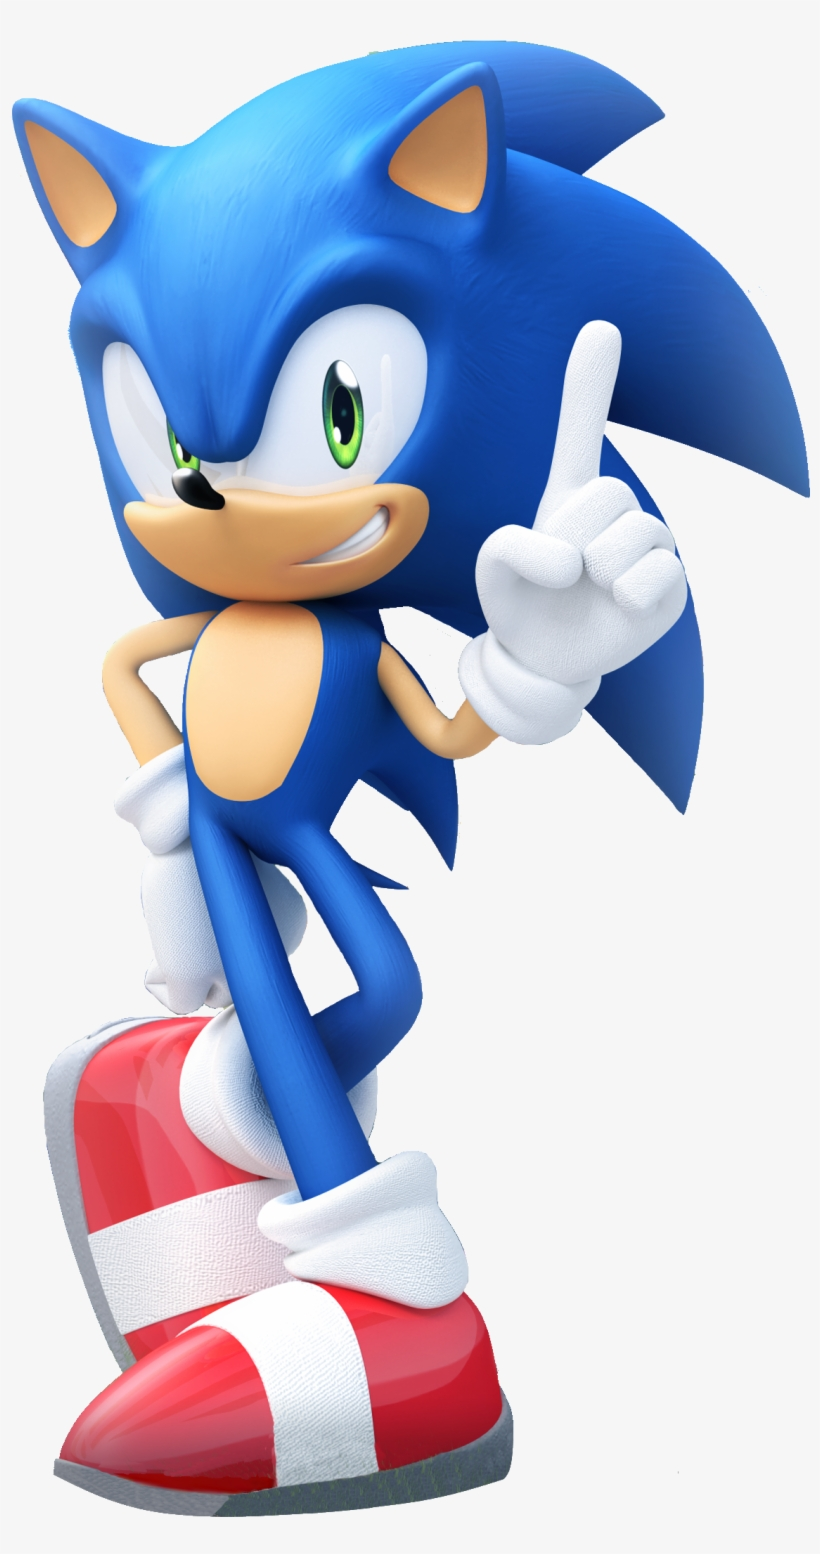 Sonic The Hedgehog Post Sgw By Elesis Knight Sonic Freedom Fighters Png Image Transparent Png Free Download On Seekpng